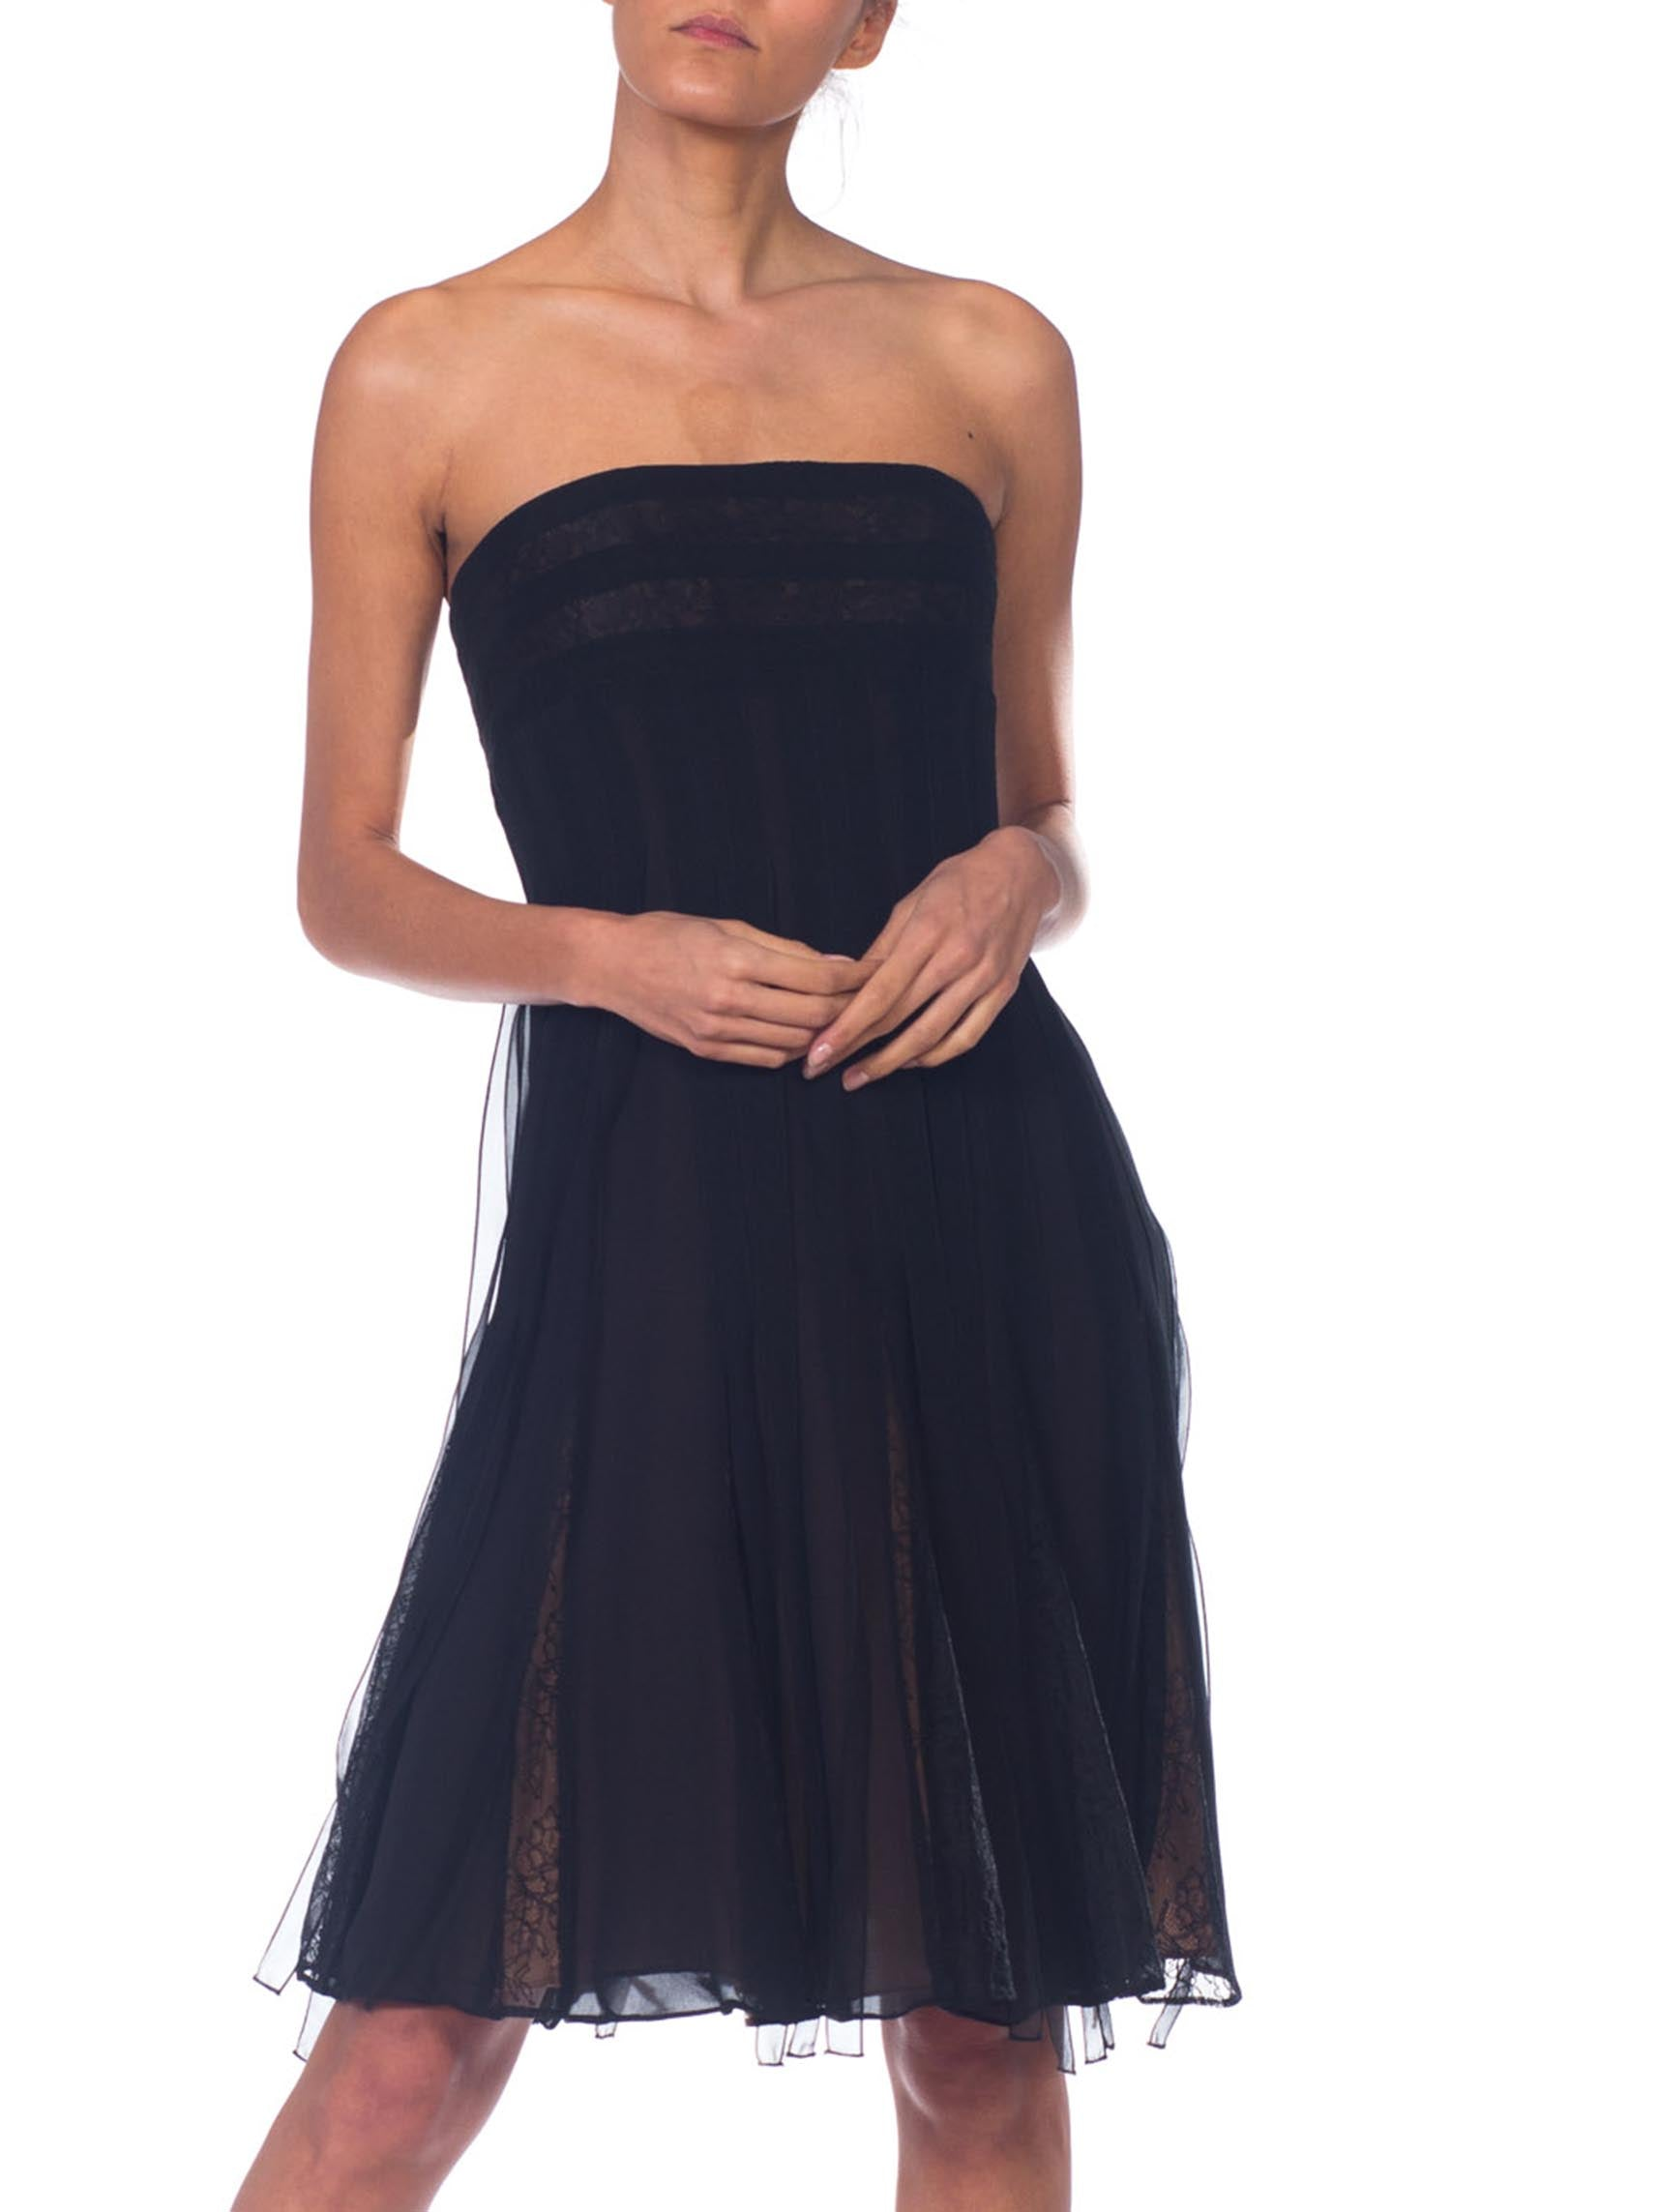 1990S CARMEN MARC VALVO Black Strapless Silk Chiffon & Lace Carwash Skirt Cocktail Dress